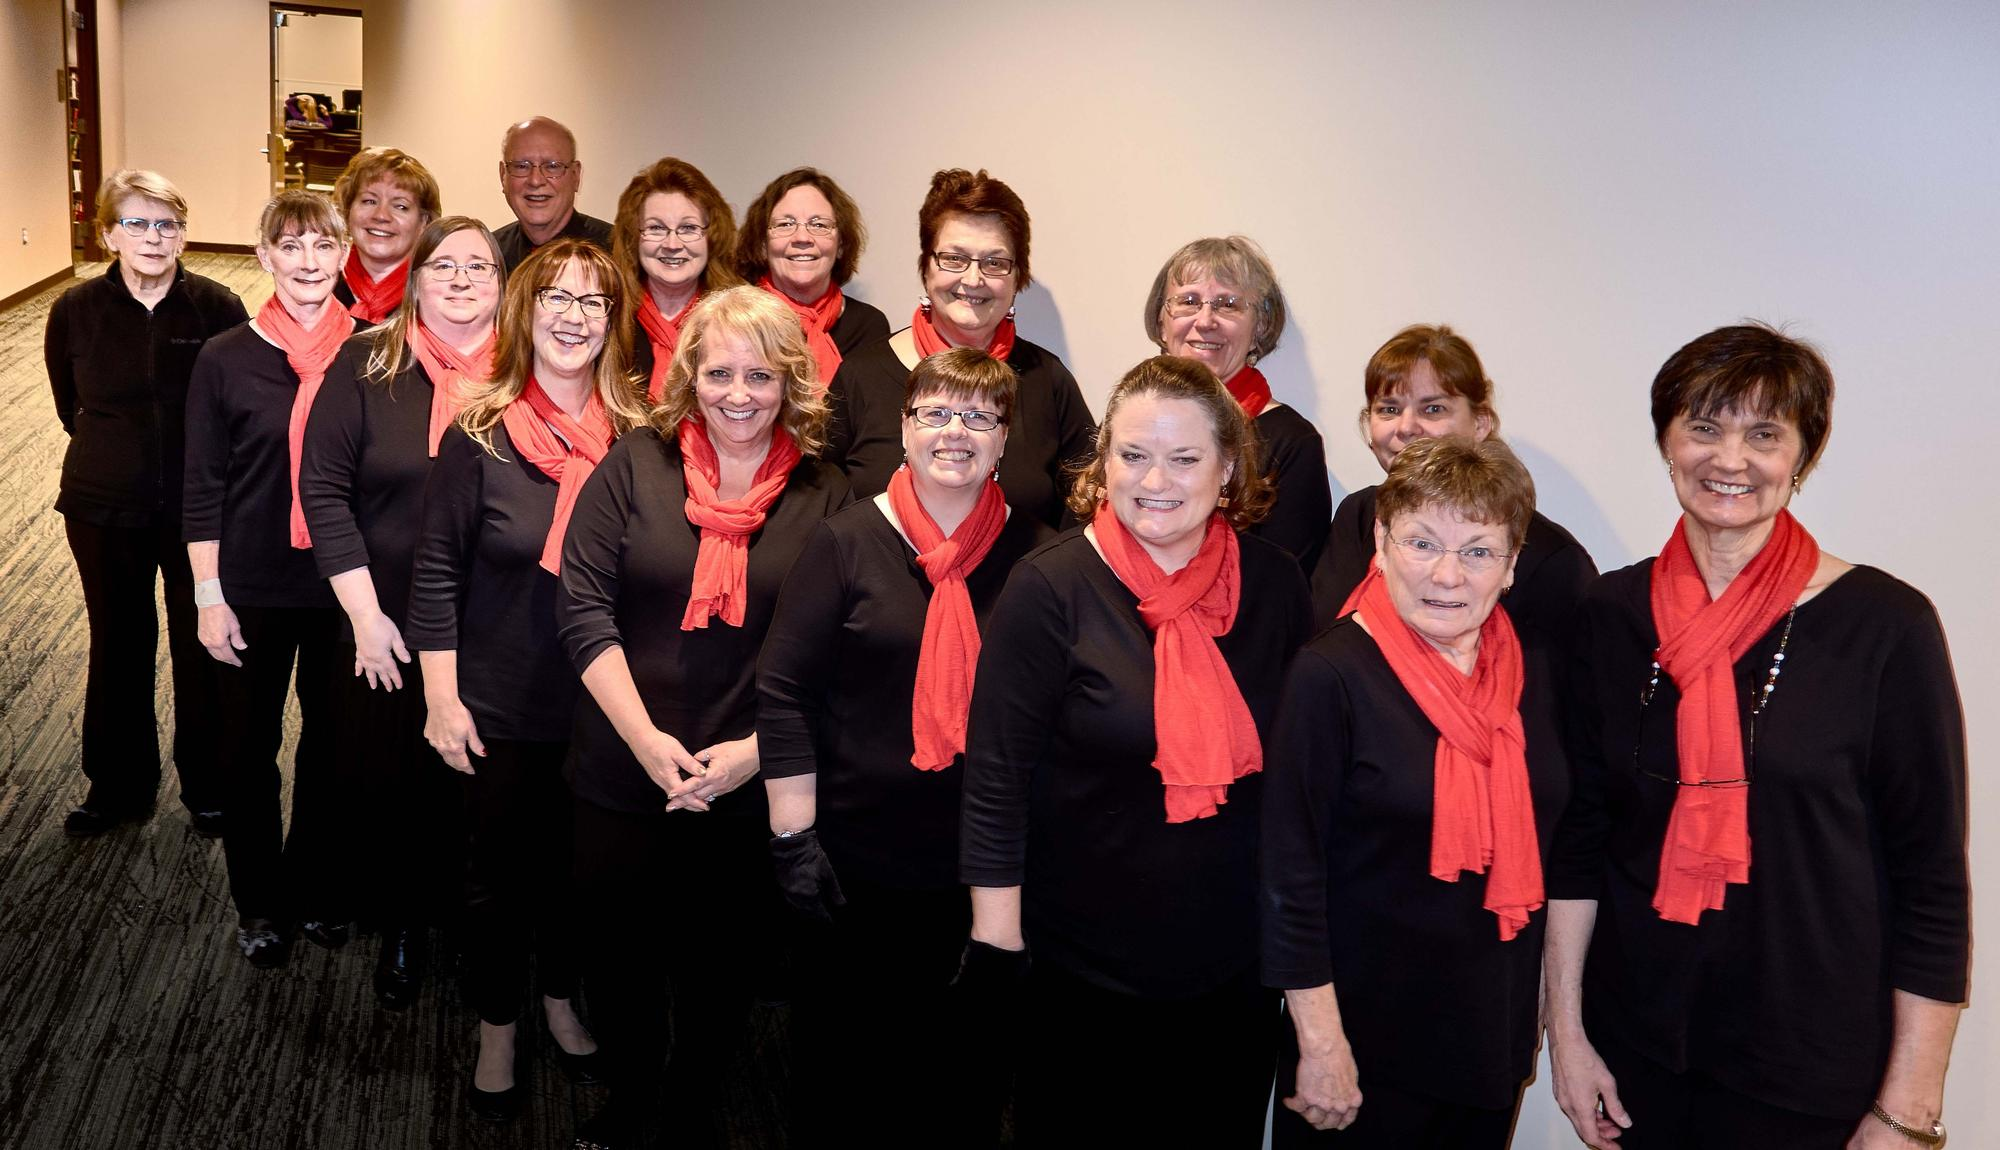 SPRINGTIME MUSIC CONCERT WITH ROC CITY RINGERS